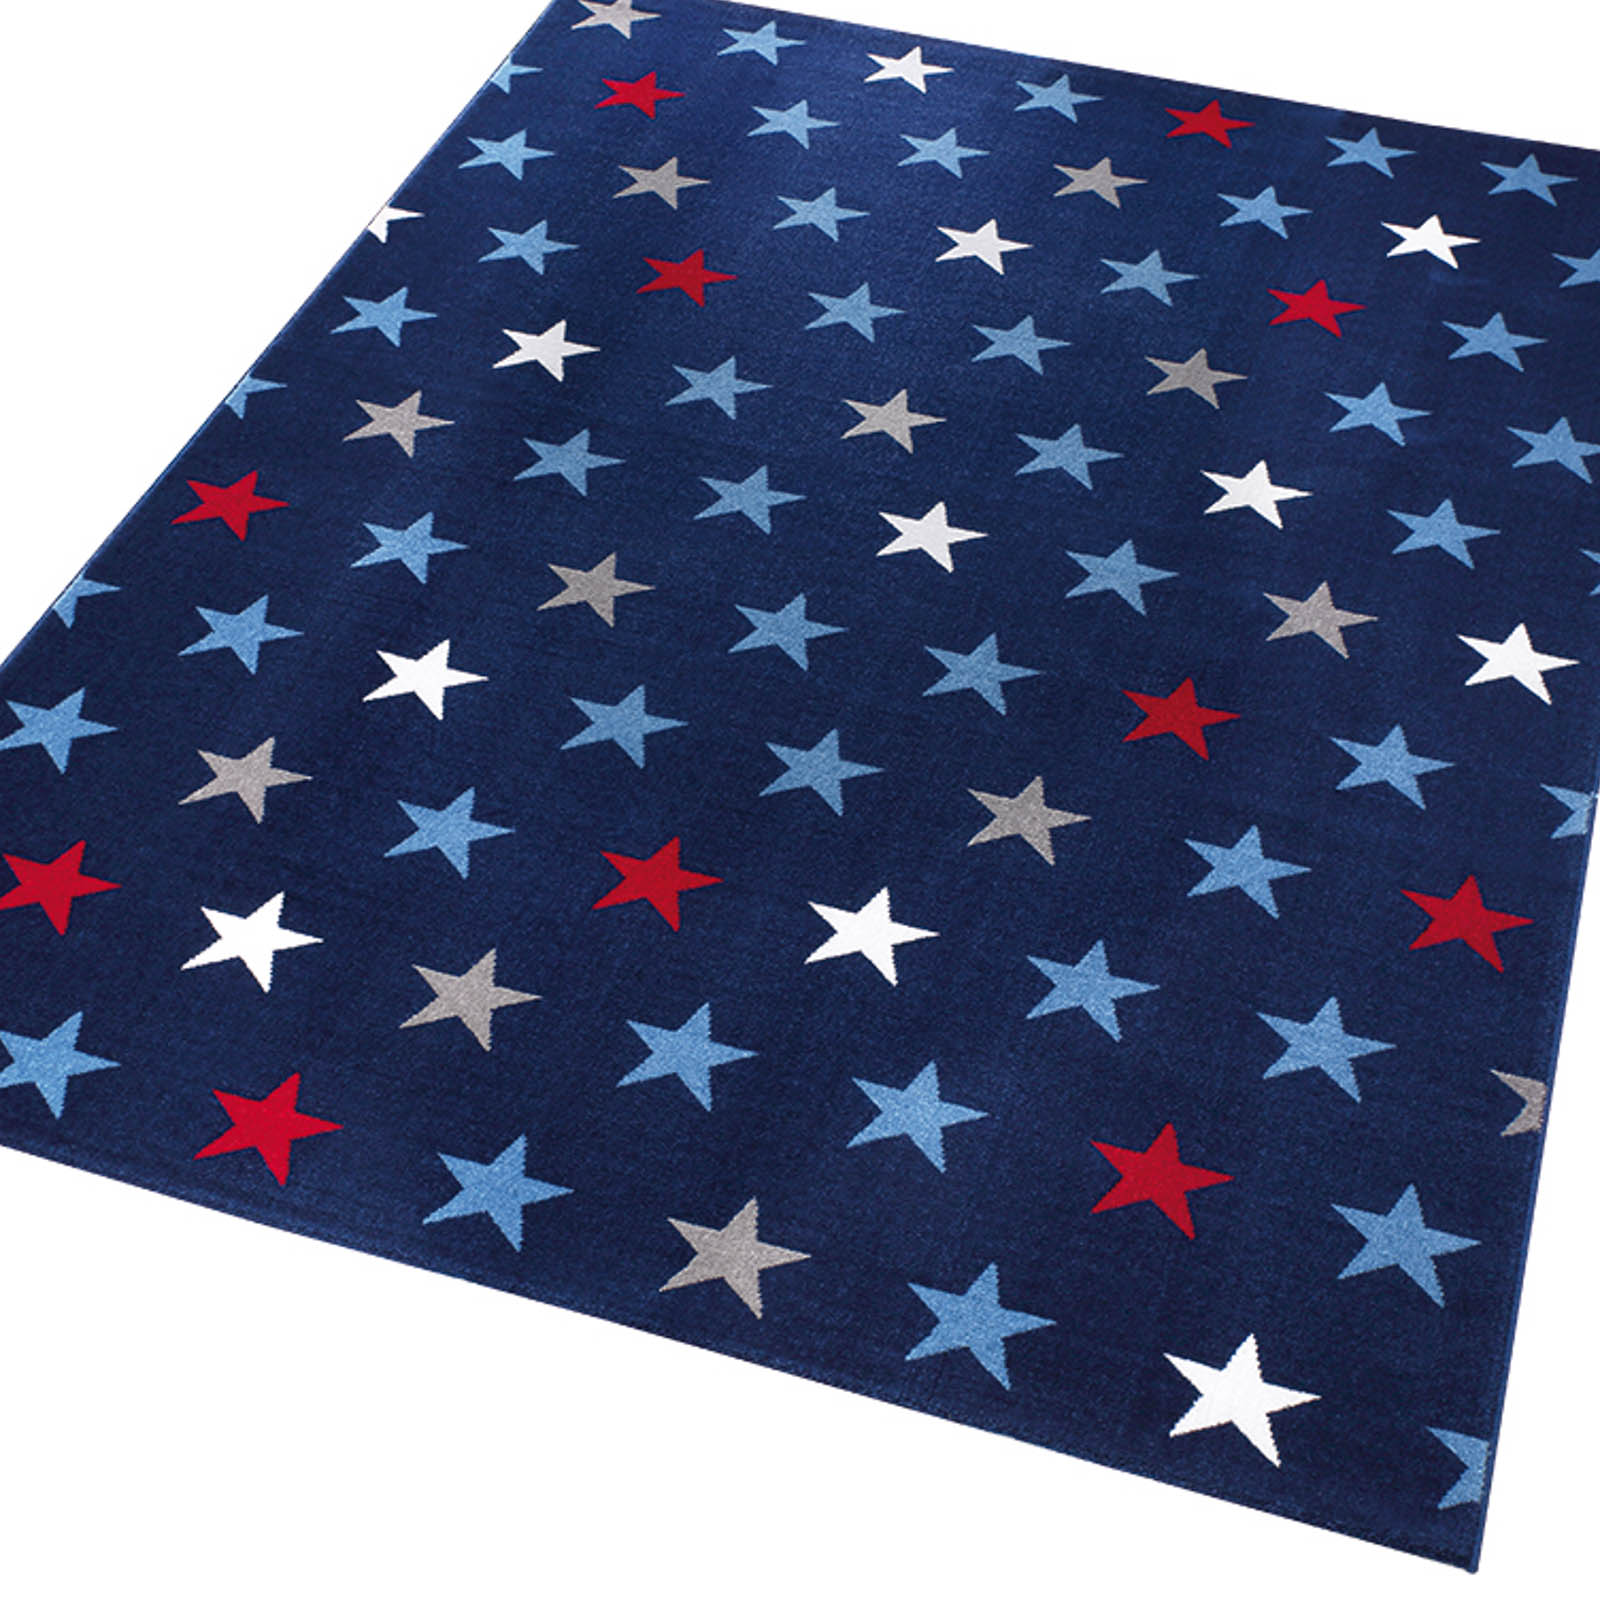 Weconhome Starry Sky Rugs 0703 03 in Blue